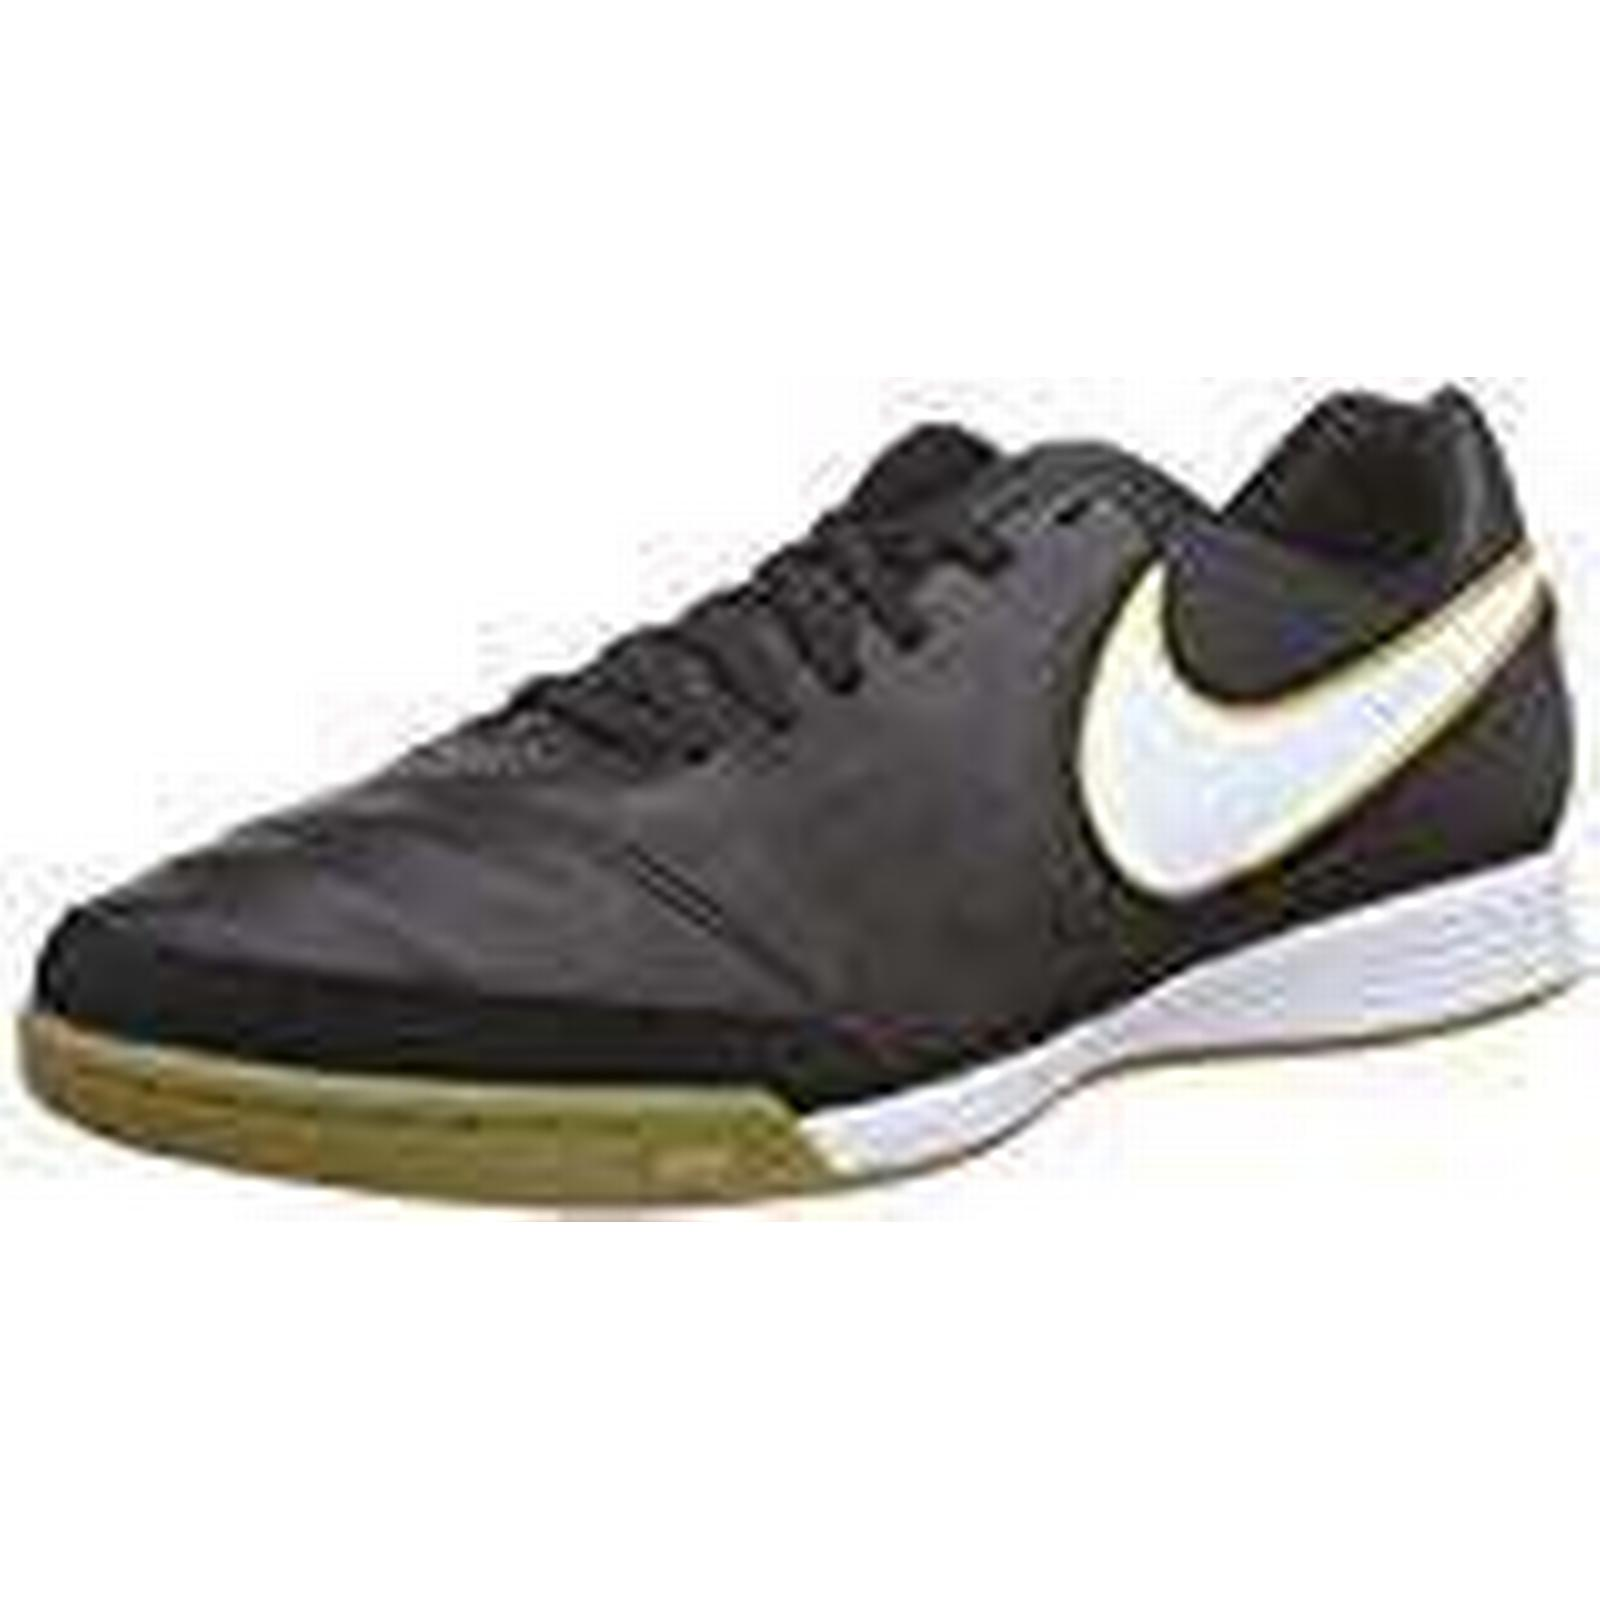 Nike Men's Tiempo Genio II Shoes, Leather IC Football Training Shoes, II Black (Schwarz/Weiß), 7.5 UK 7b8b1d